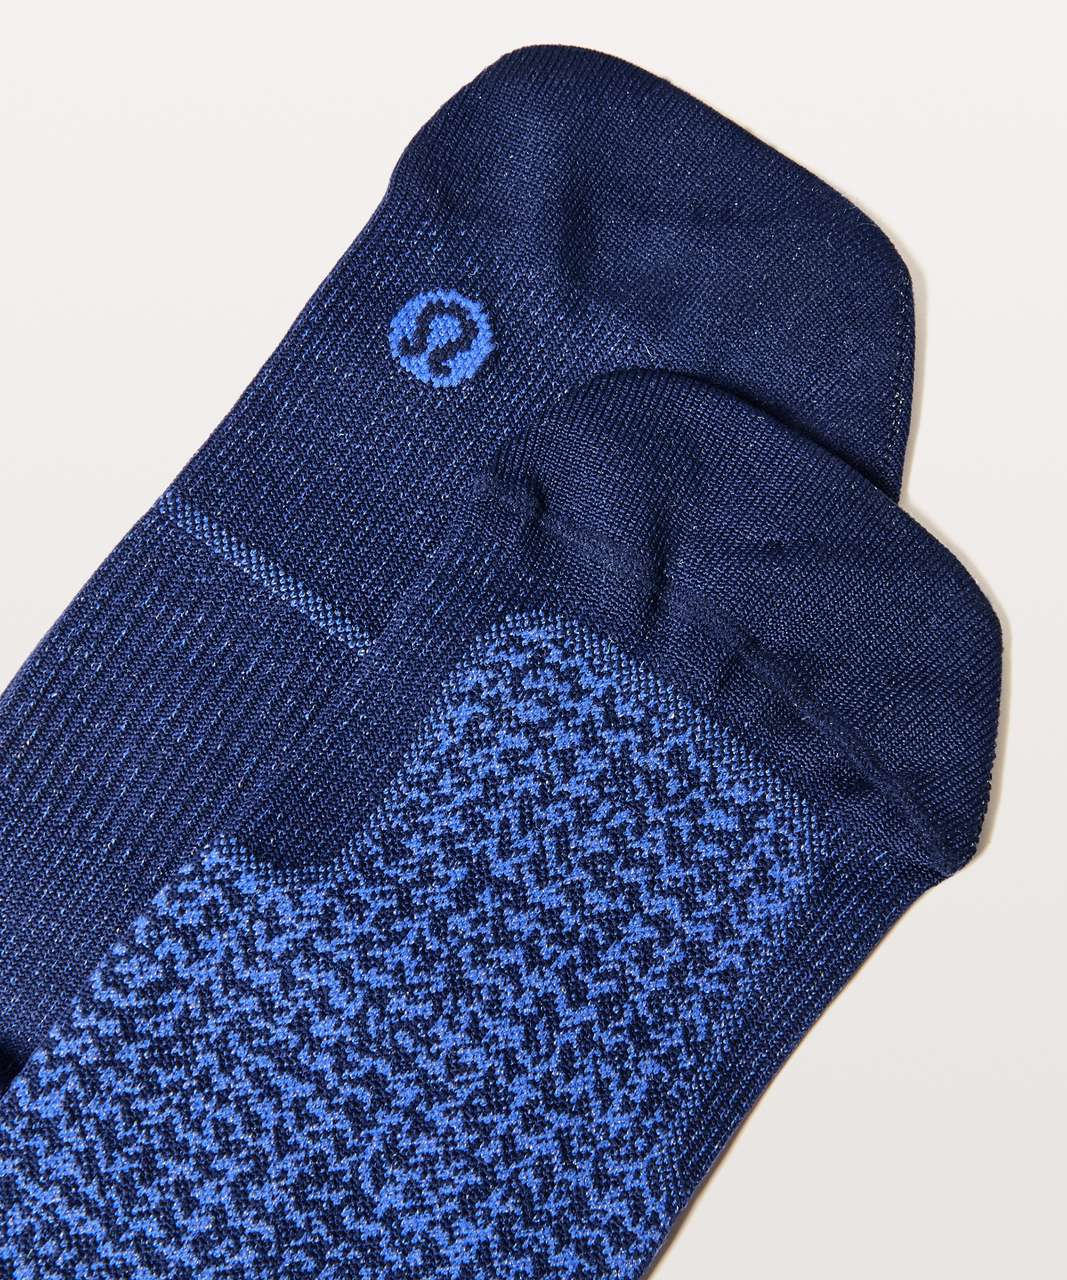 Lululemon Light Speed Sock Silver - Hero Blue / Blazer Blue